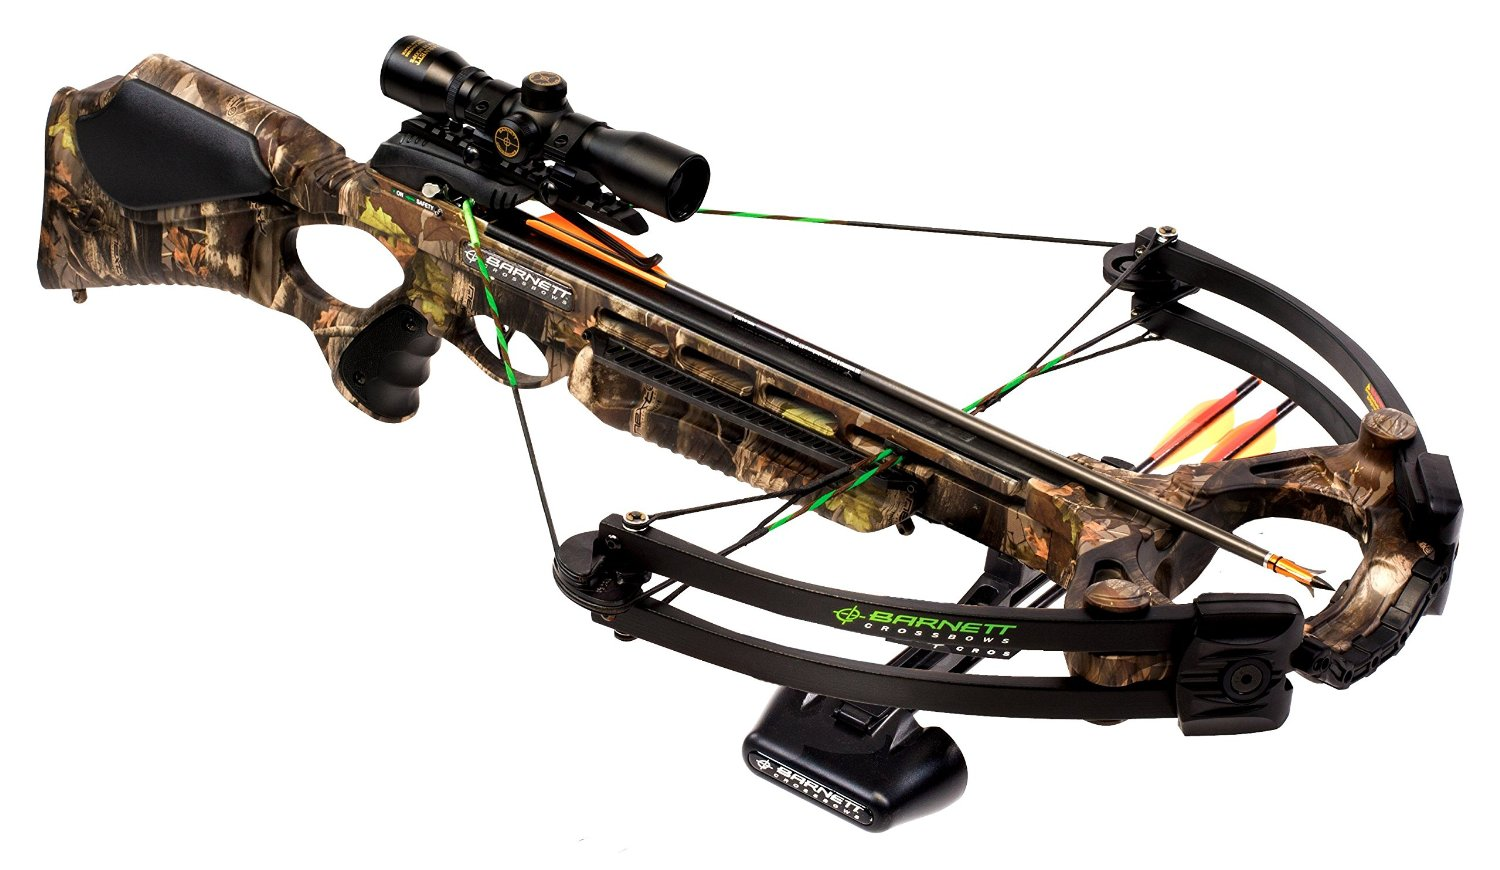 Barnett Crossbow Scope 4x32mm: Do You Really Need It? This Review Will Help You Decide!